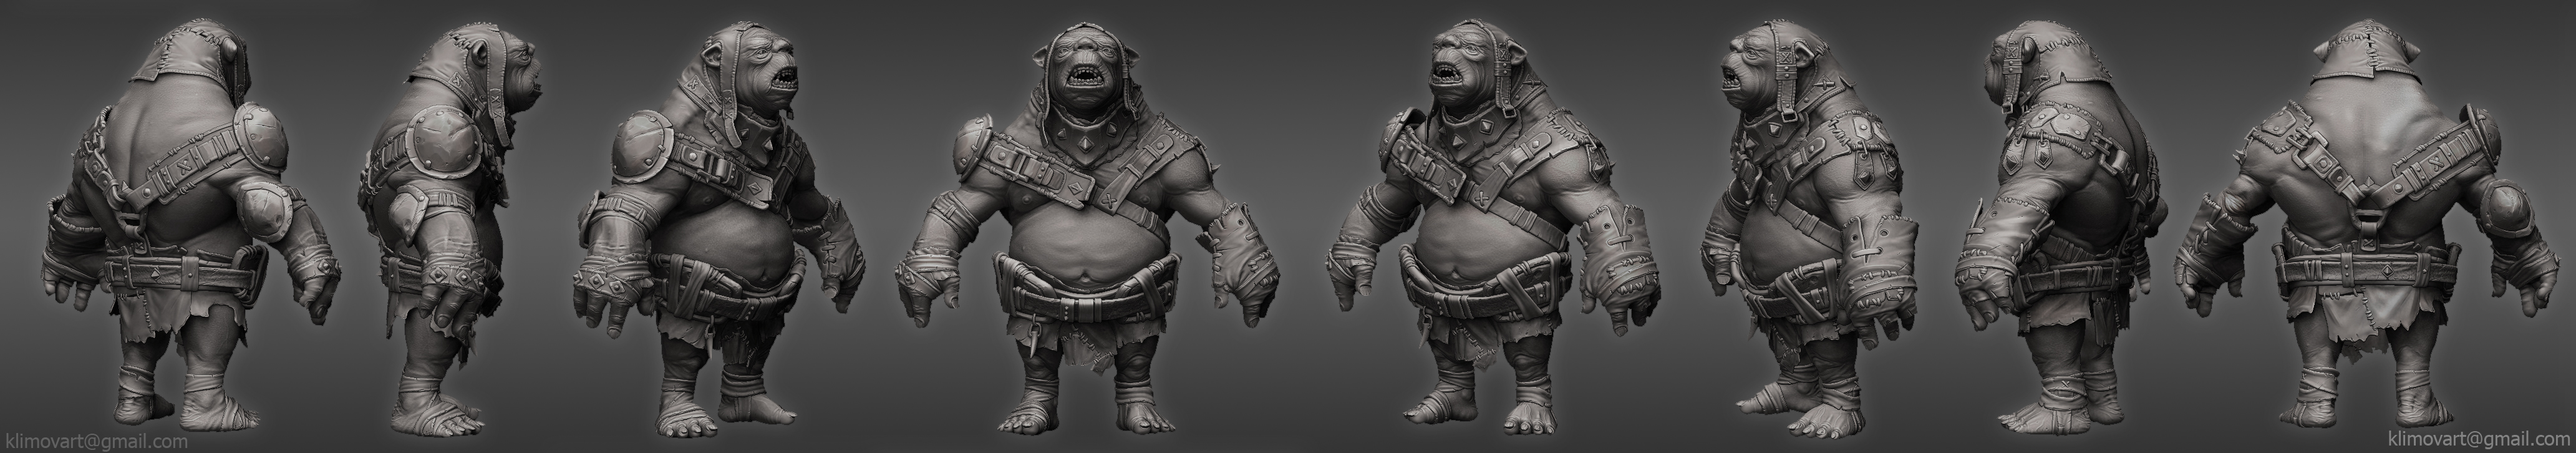 Orc render1 up by jips3d